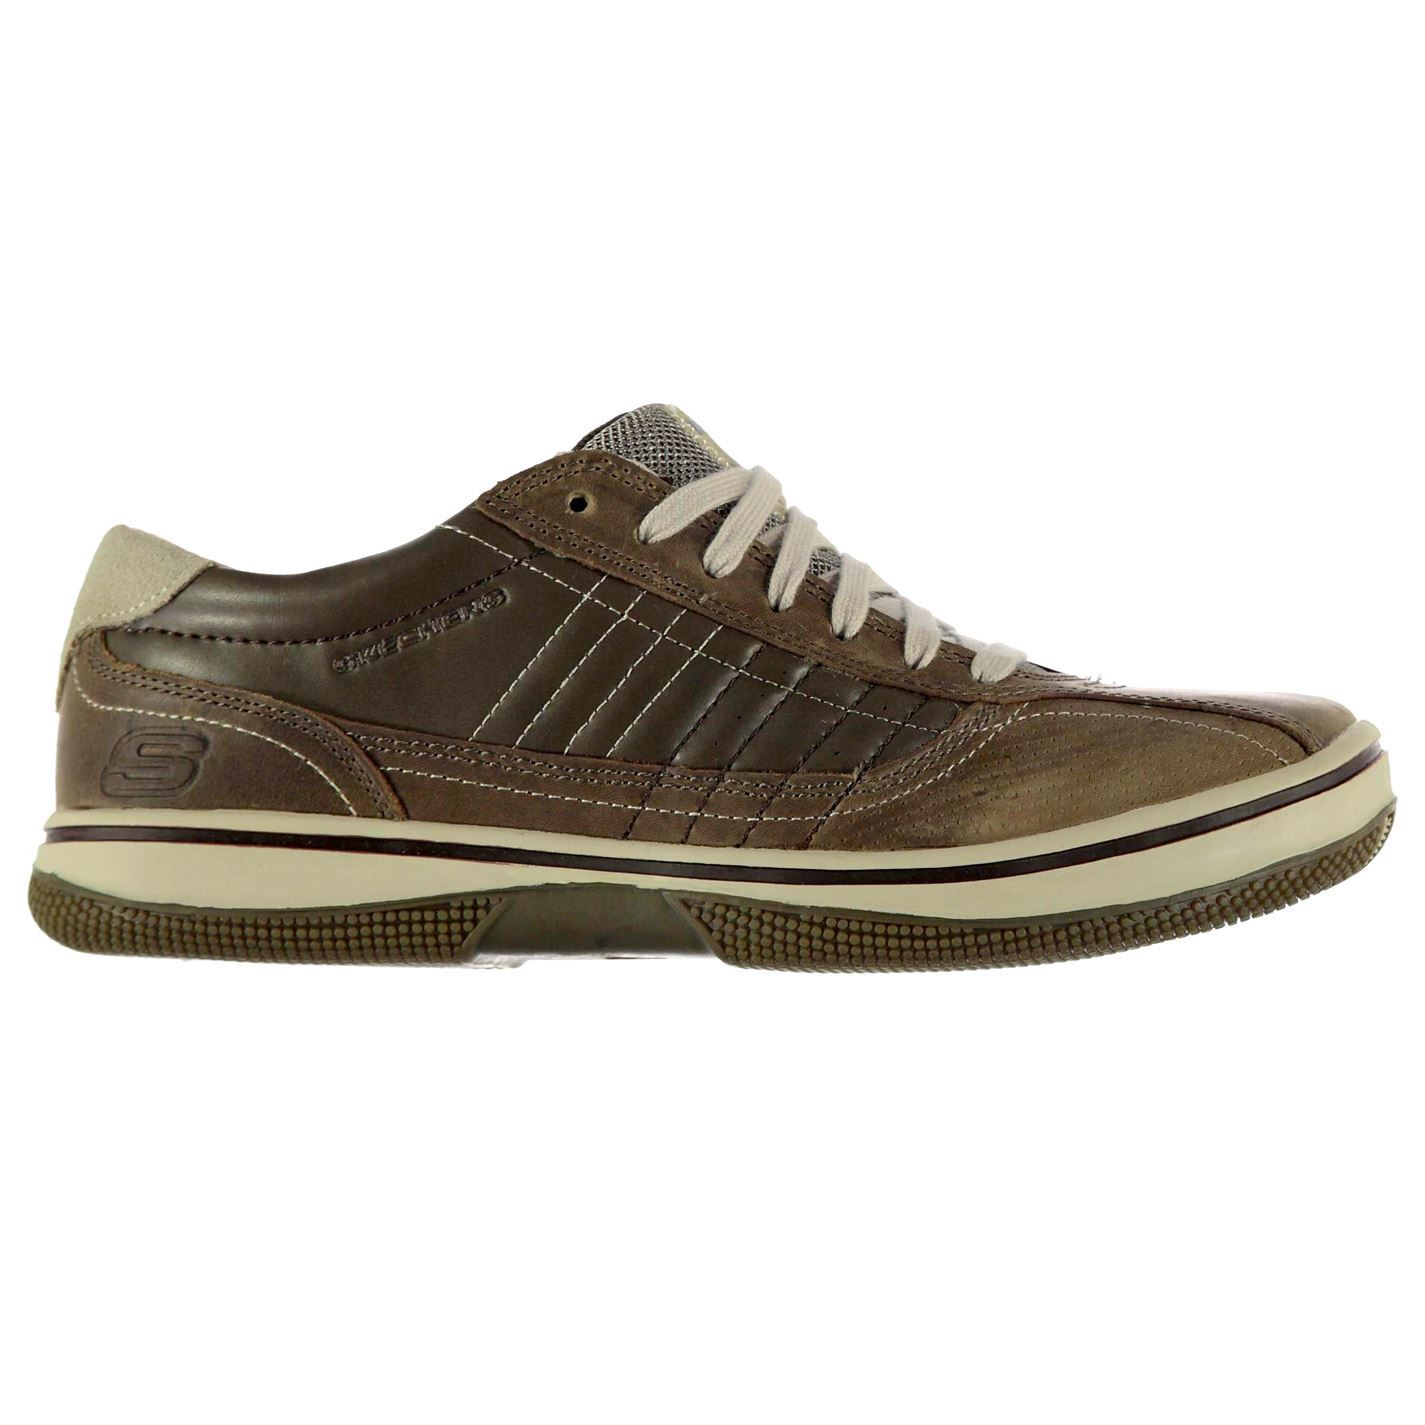 new product fc89d 47020 ... Skechers Piers Sport Trainers Mens Athleisure Footwear Shoes Sneakers